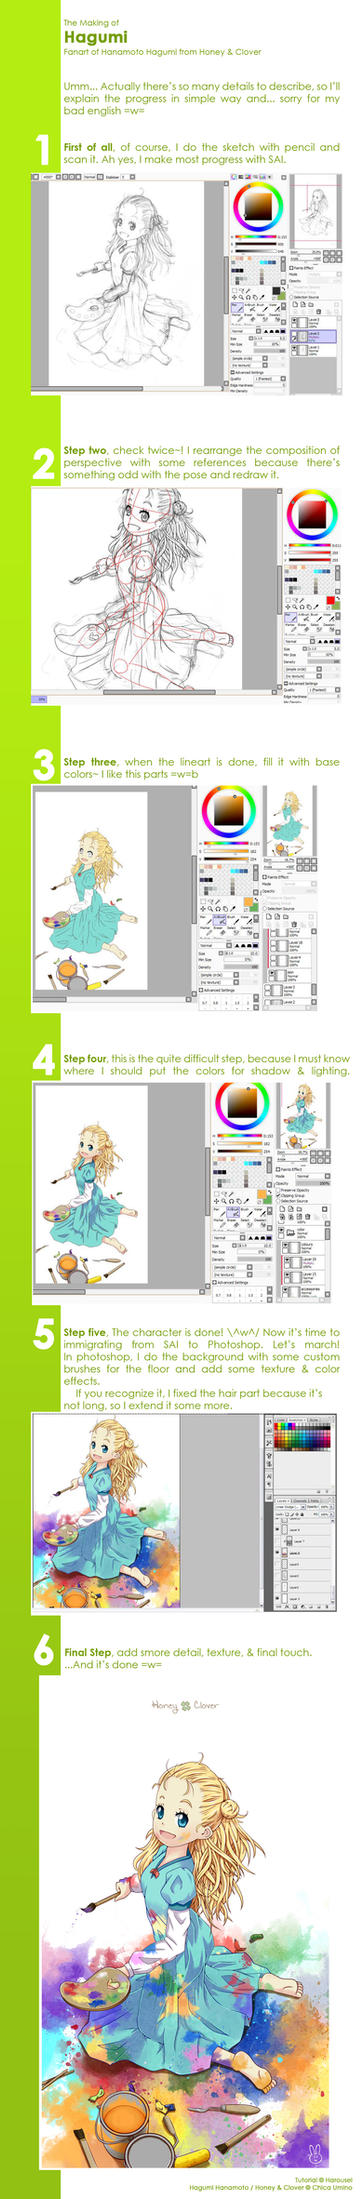 Hagumi - The Making of by harousel